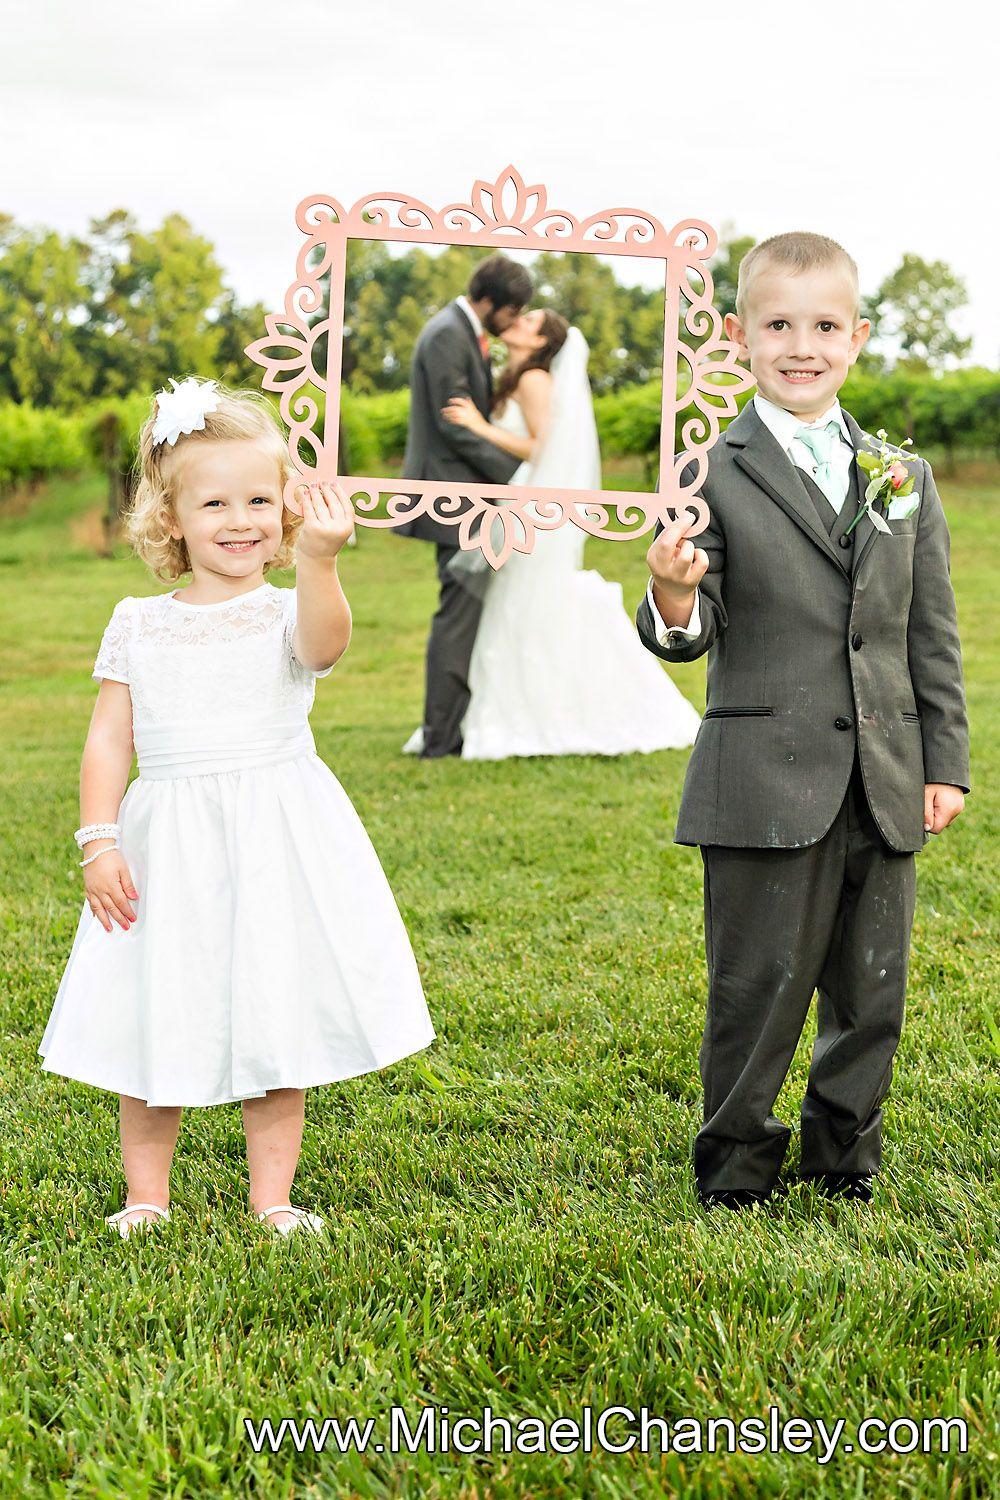 ring bearer and flower girl hold up photo frame with bride and groom ...